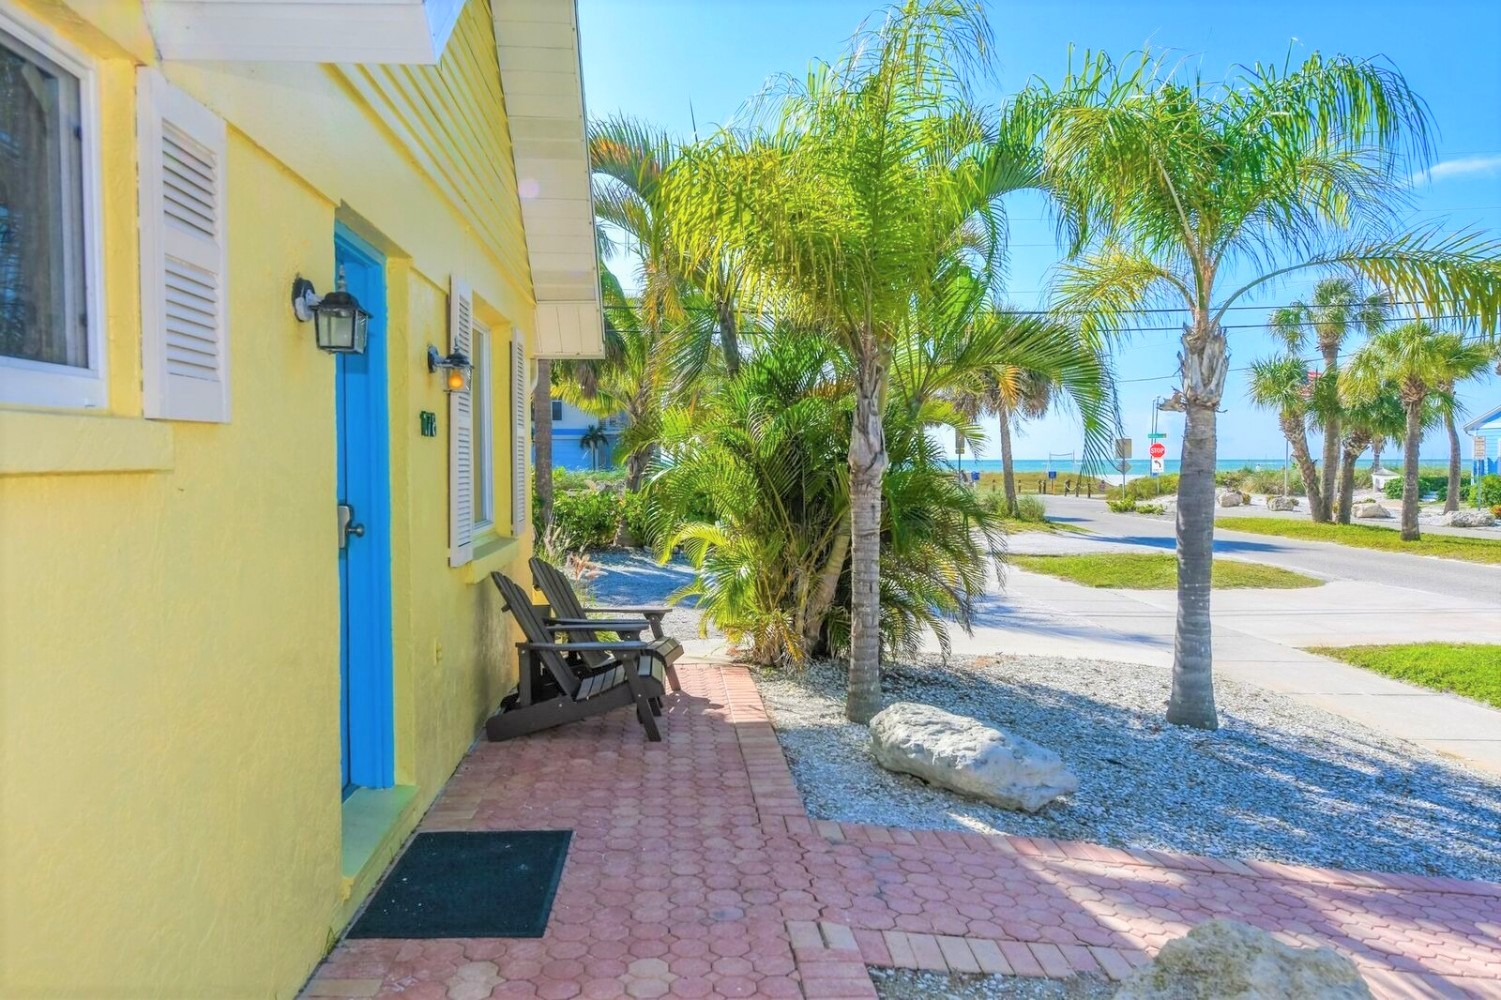 178 - Siesta Key Vacation Rentals